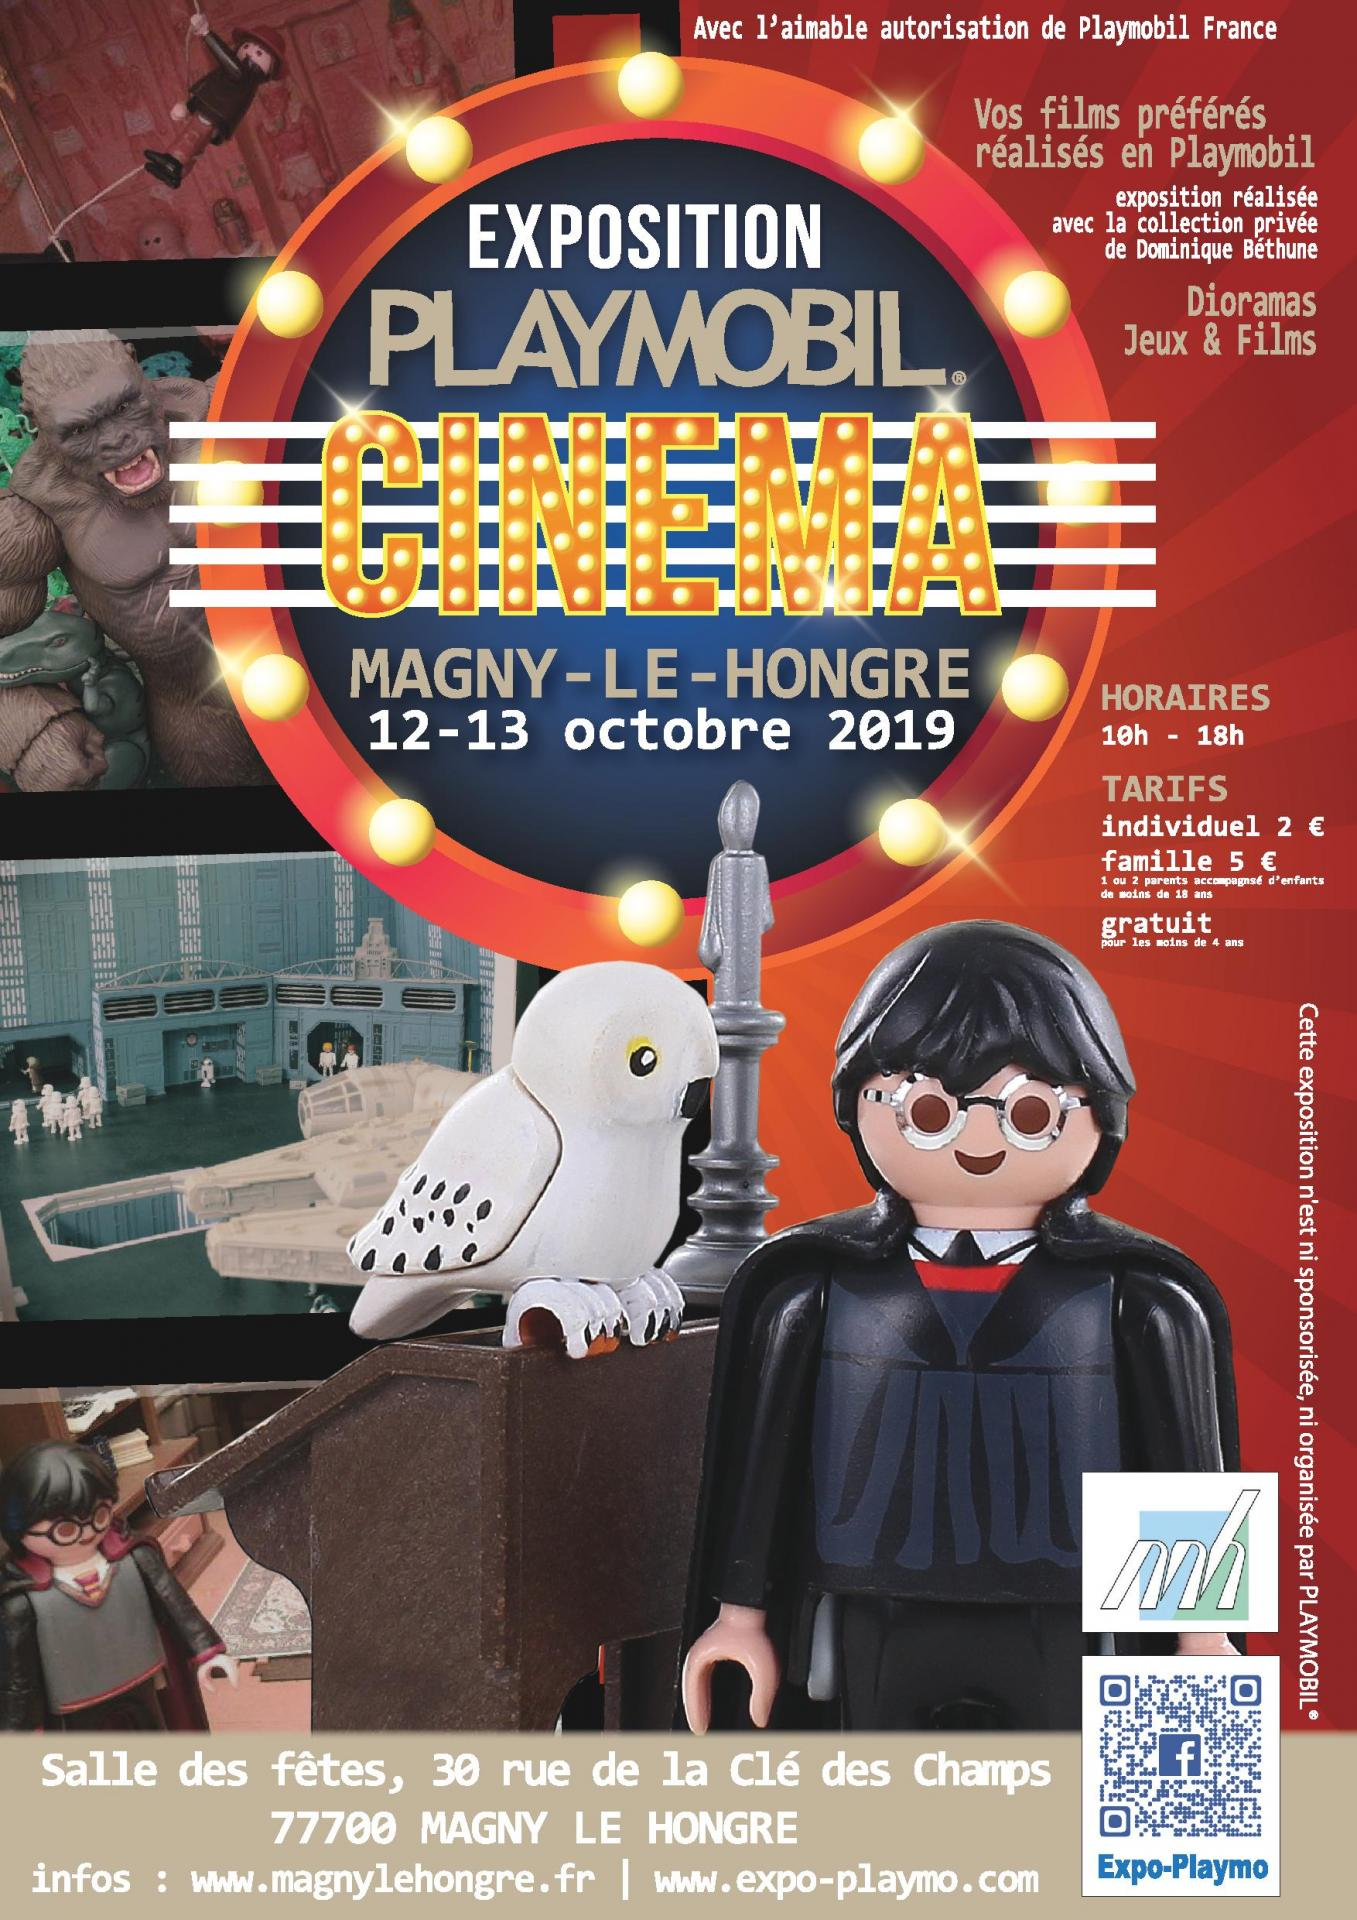 Affiche exposition playmobil magny le hongre 2019 dominique bethune collectionneur